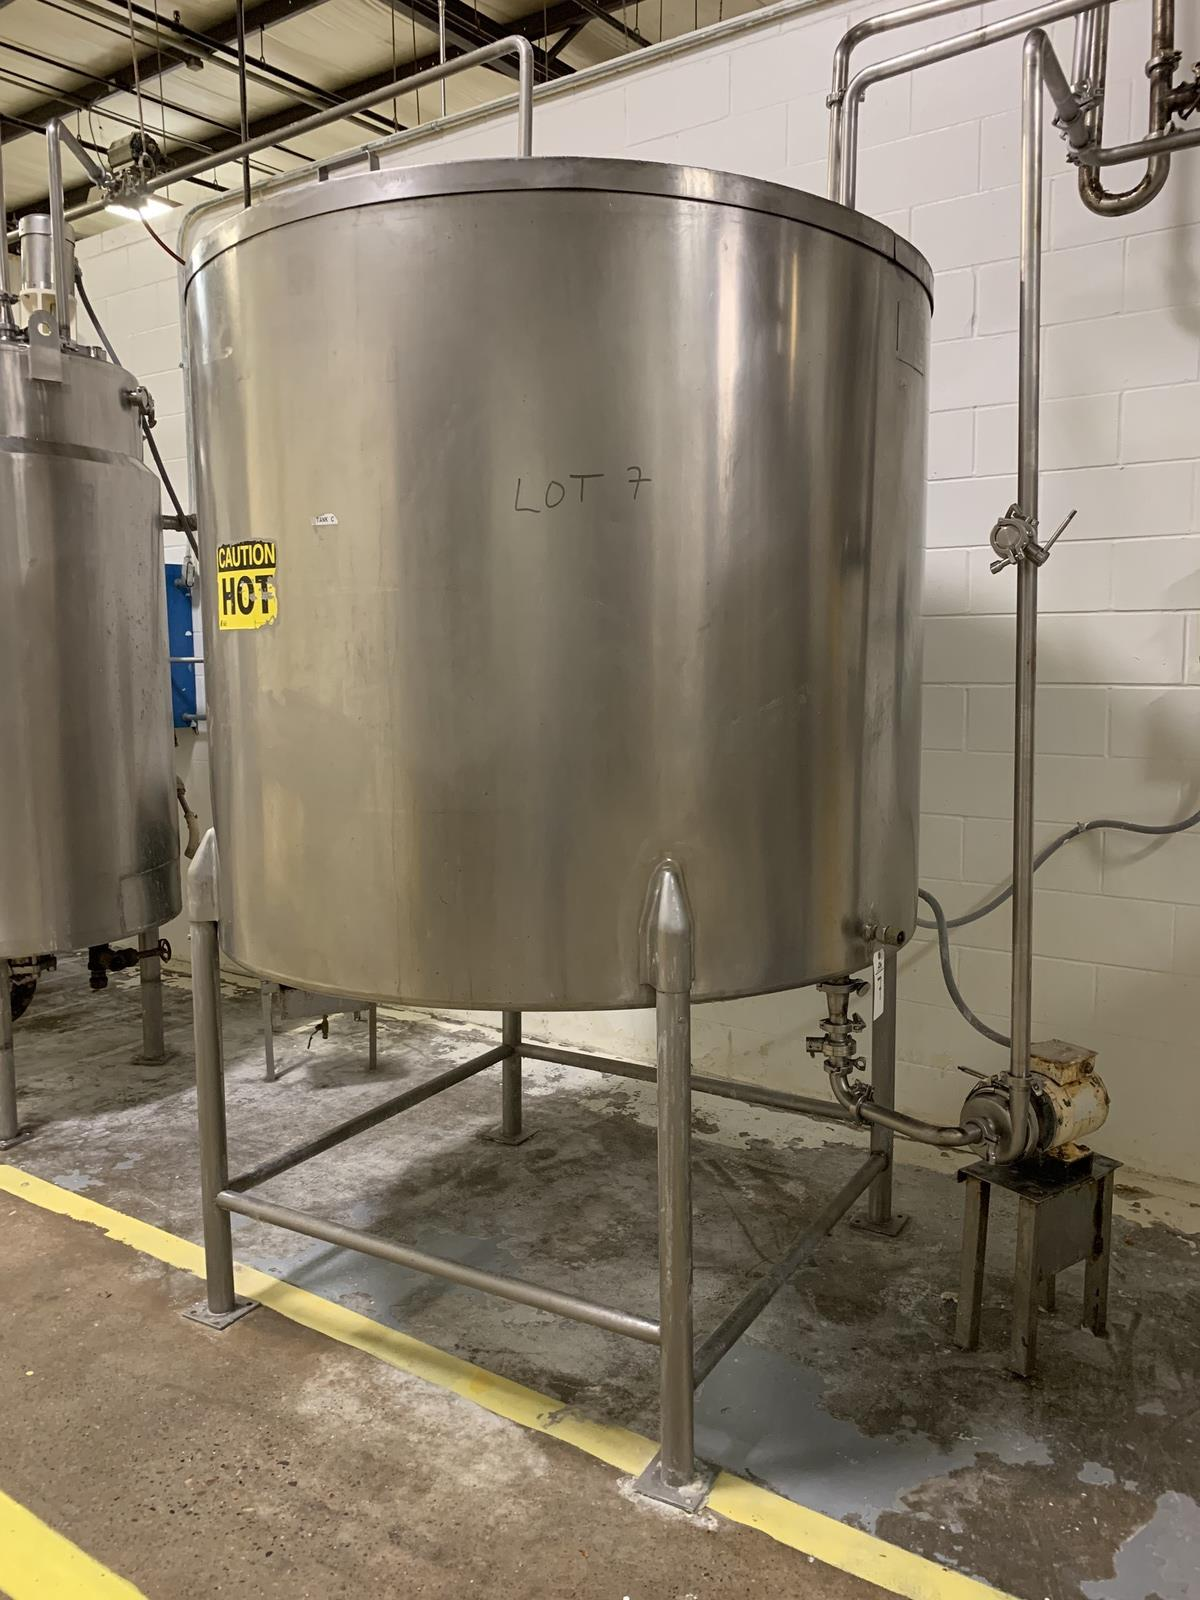 Lot 7 - 650 Gallon Stainless Steel Vertical Jacketed Storage Tank with Centrifugal Pump, 50 | Rig Fee: 350